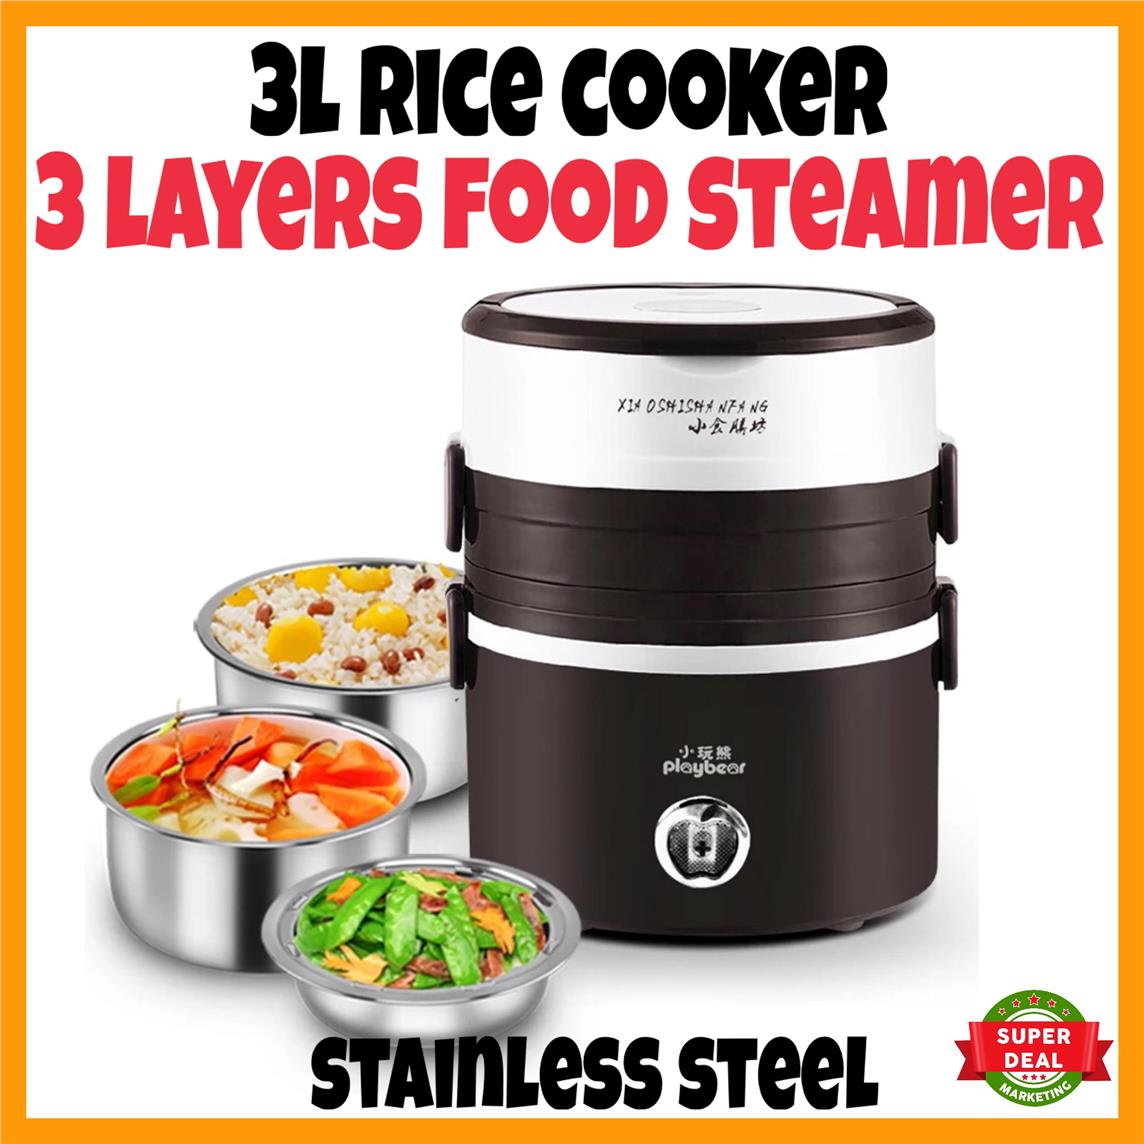 New 3 Layers Rice Cooker Baby Food W End 8 19 2020 2 15 Pm